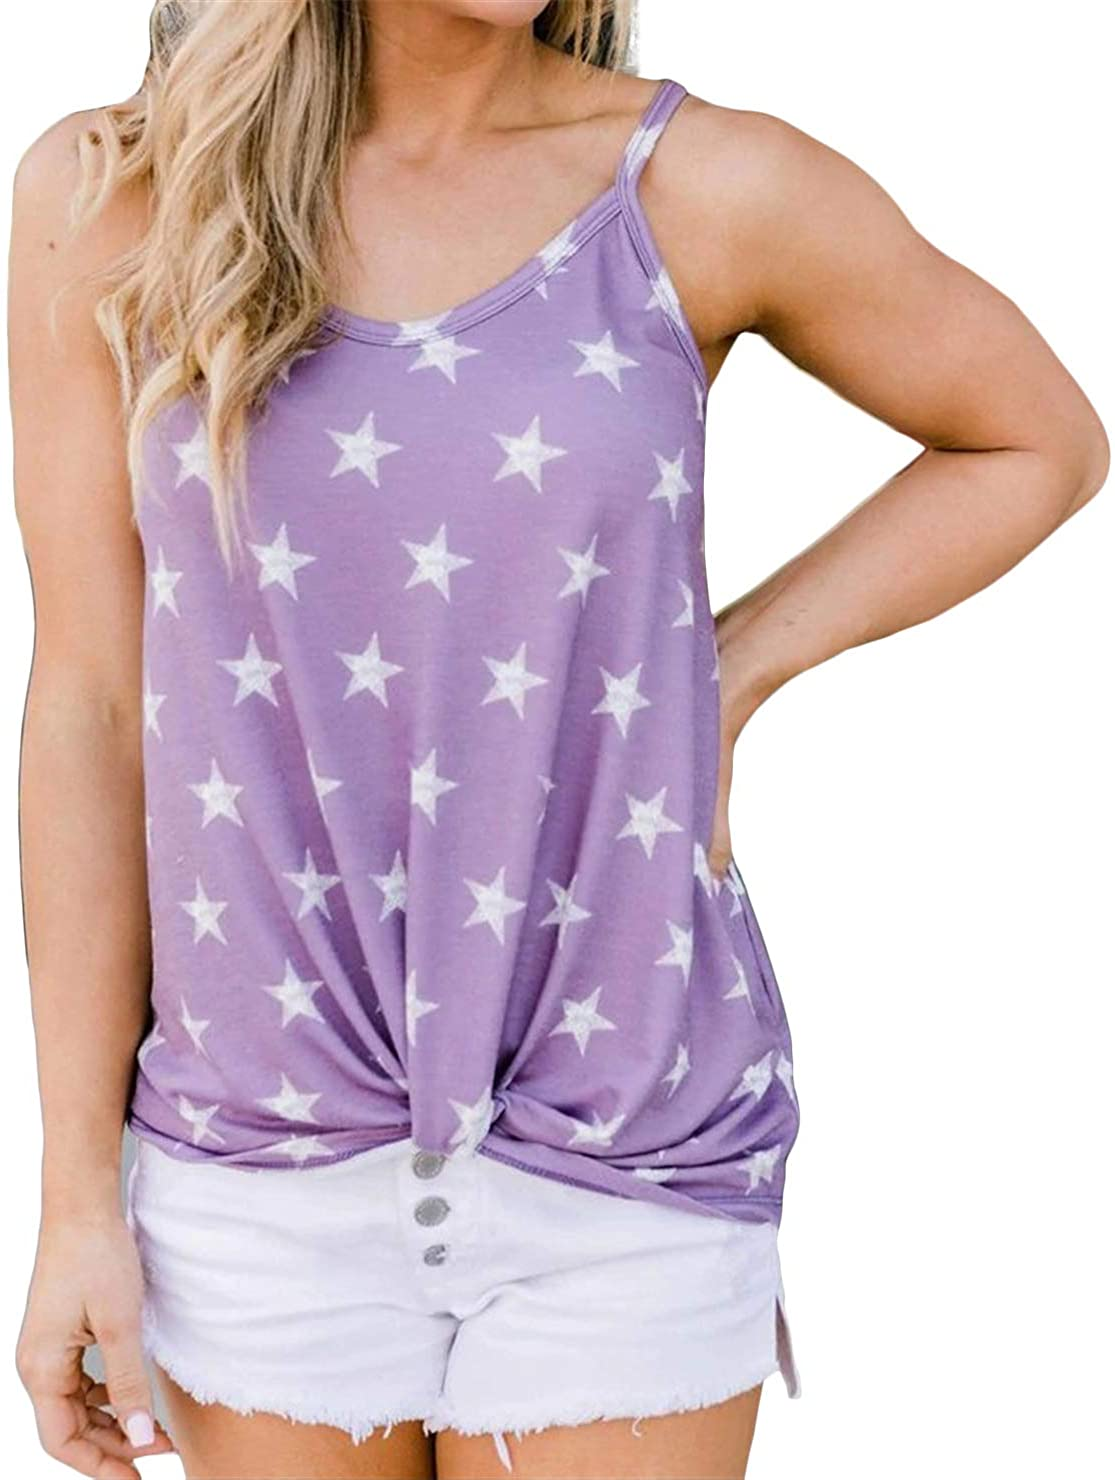 Paixpays Sleeveless Sling Casual Star Print Basic Vest Top